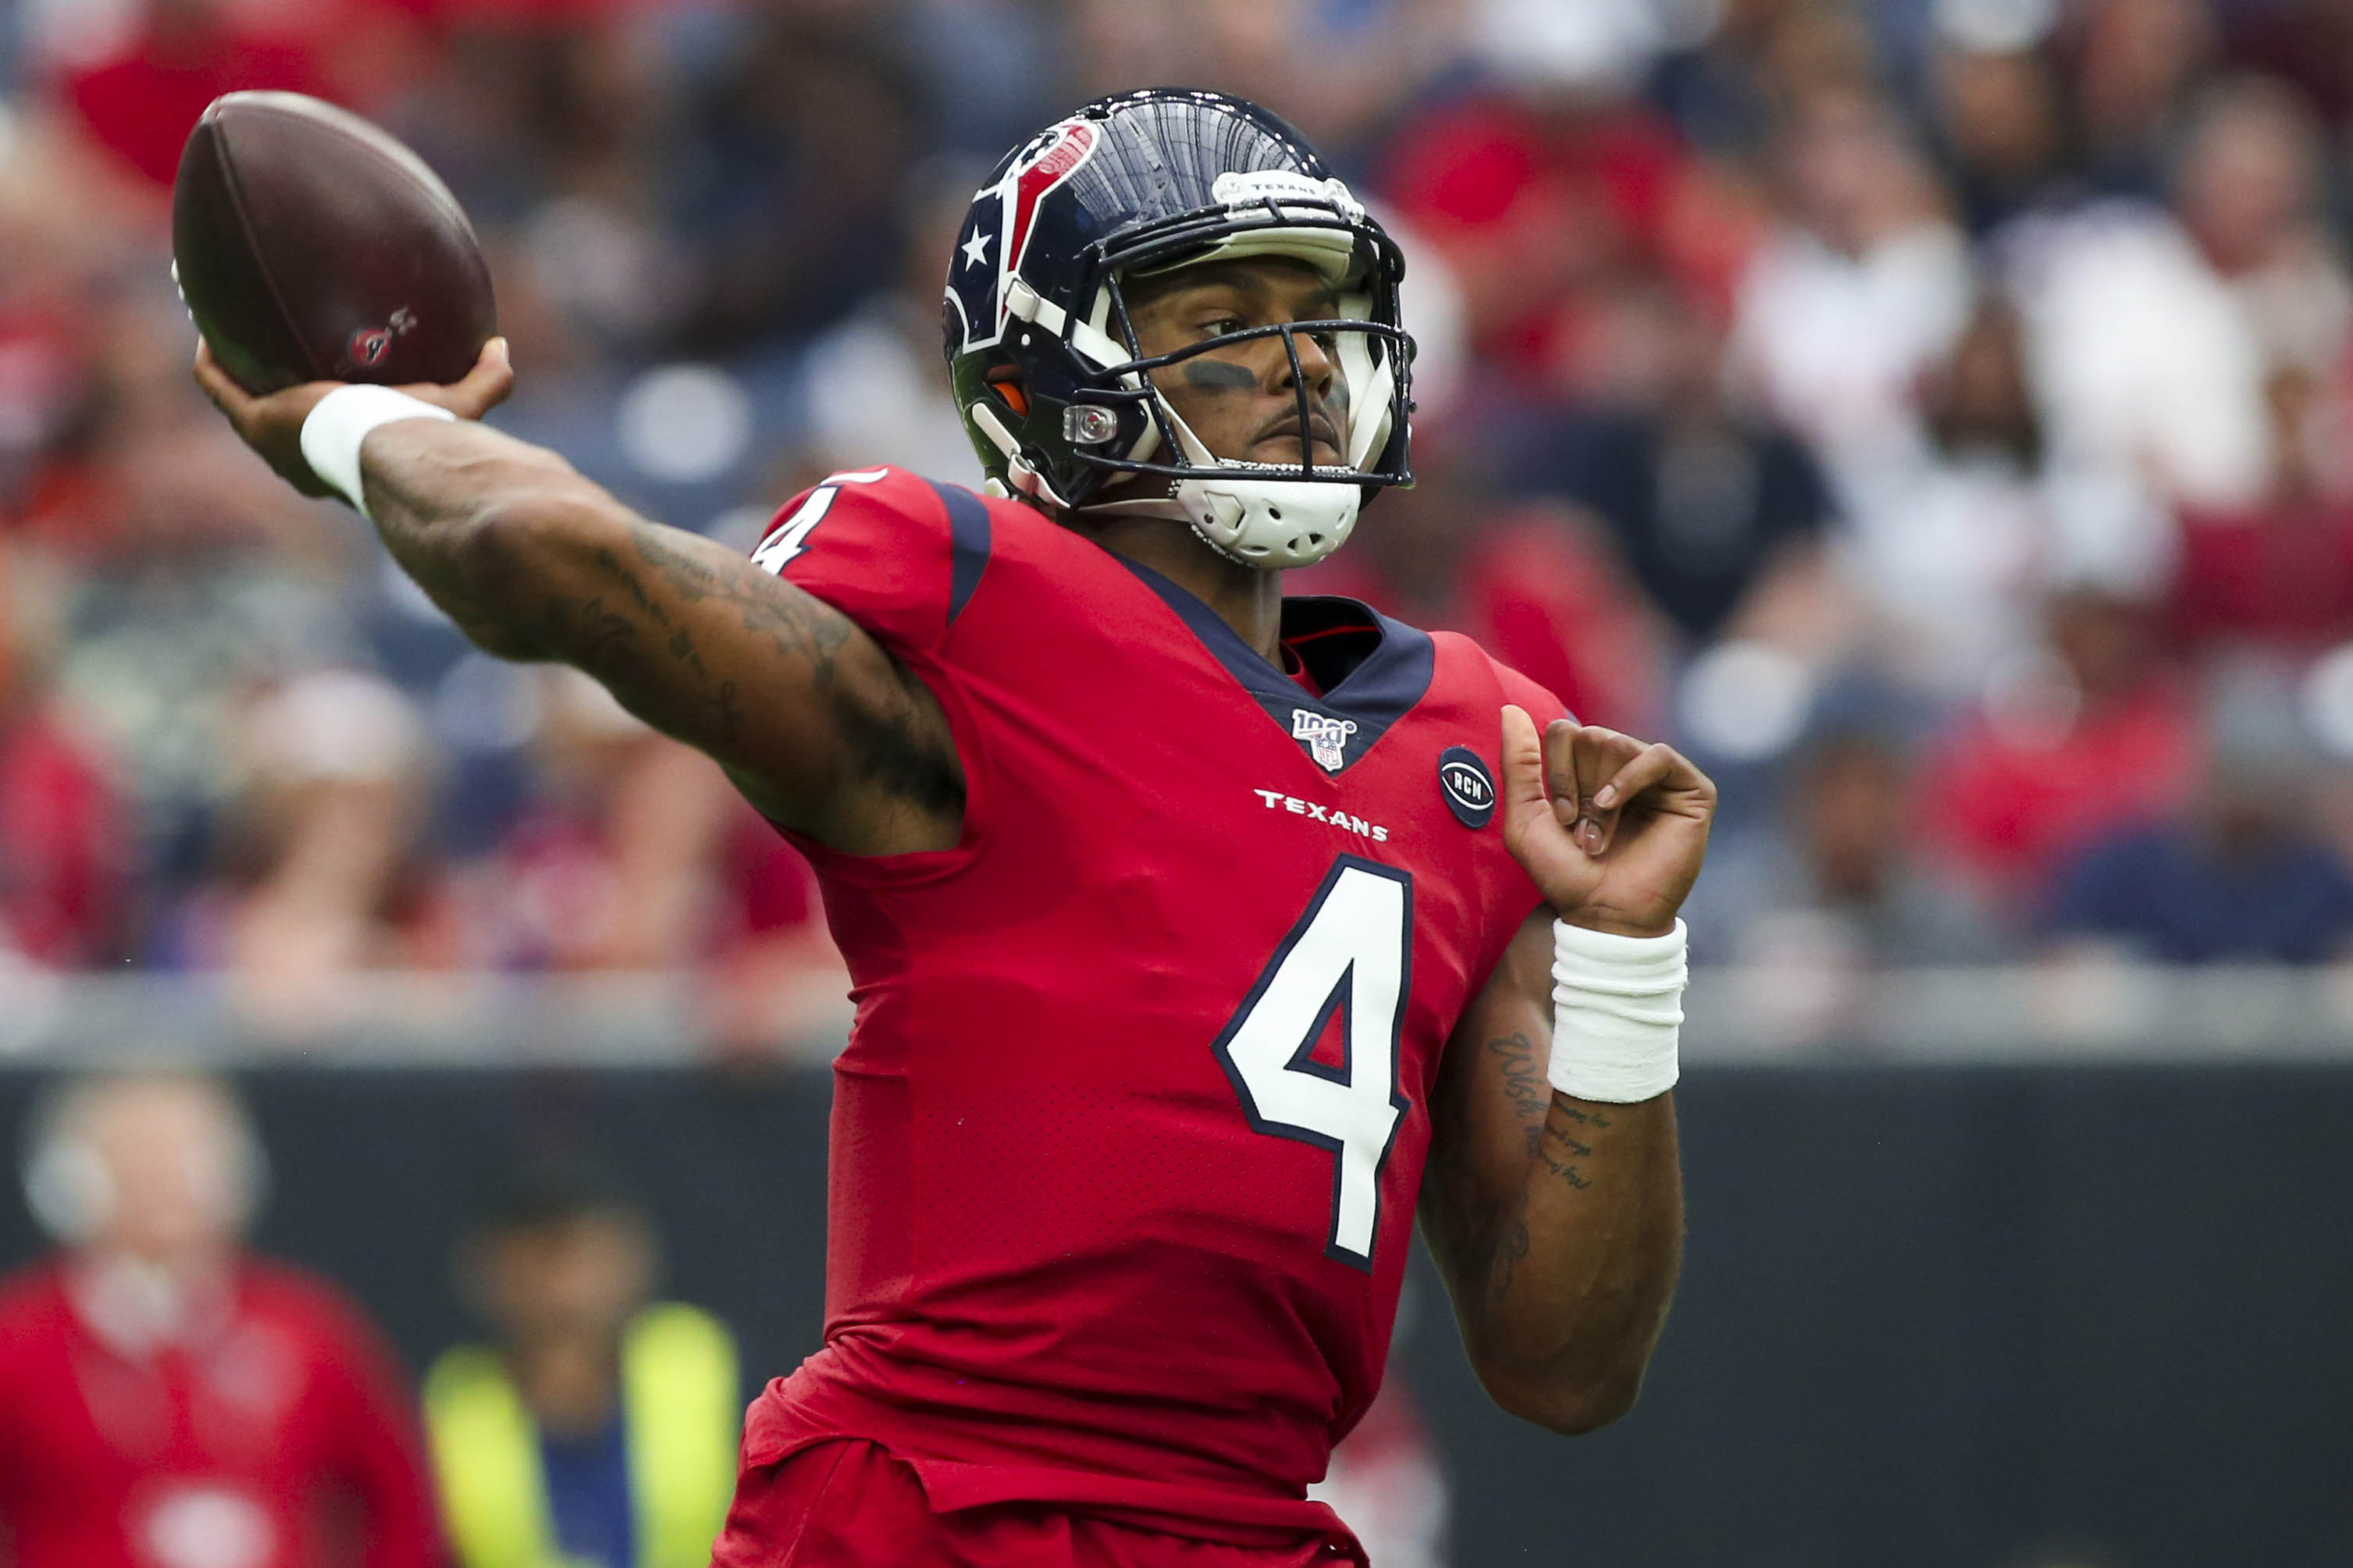 Houston Texans quarterback Deshaun Watson sets up to throw during the second quarter against the Denver Broncos at NRG Stadium.